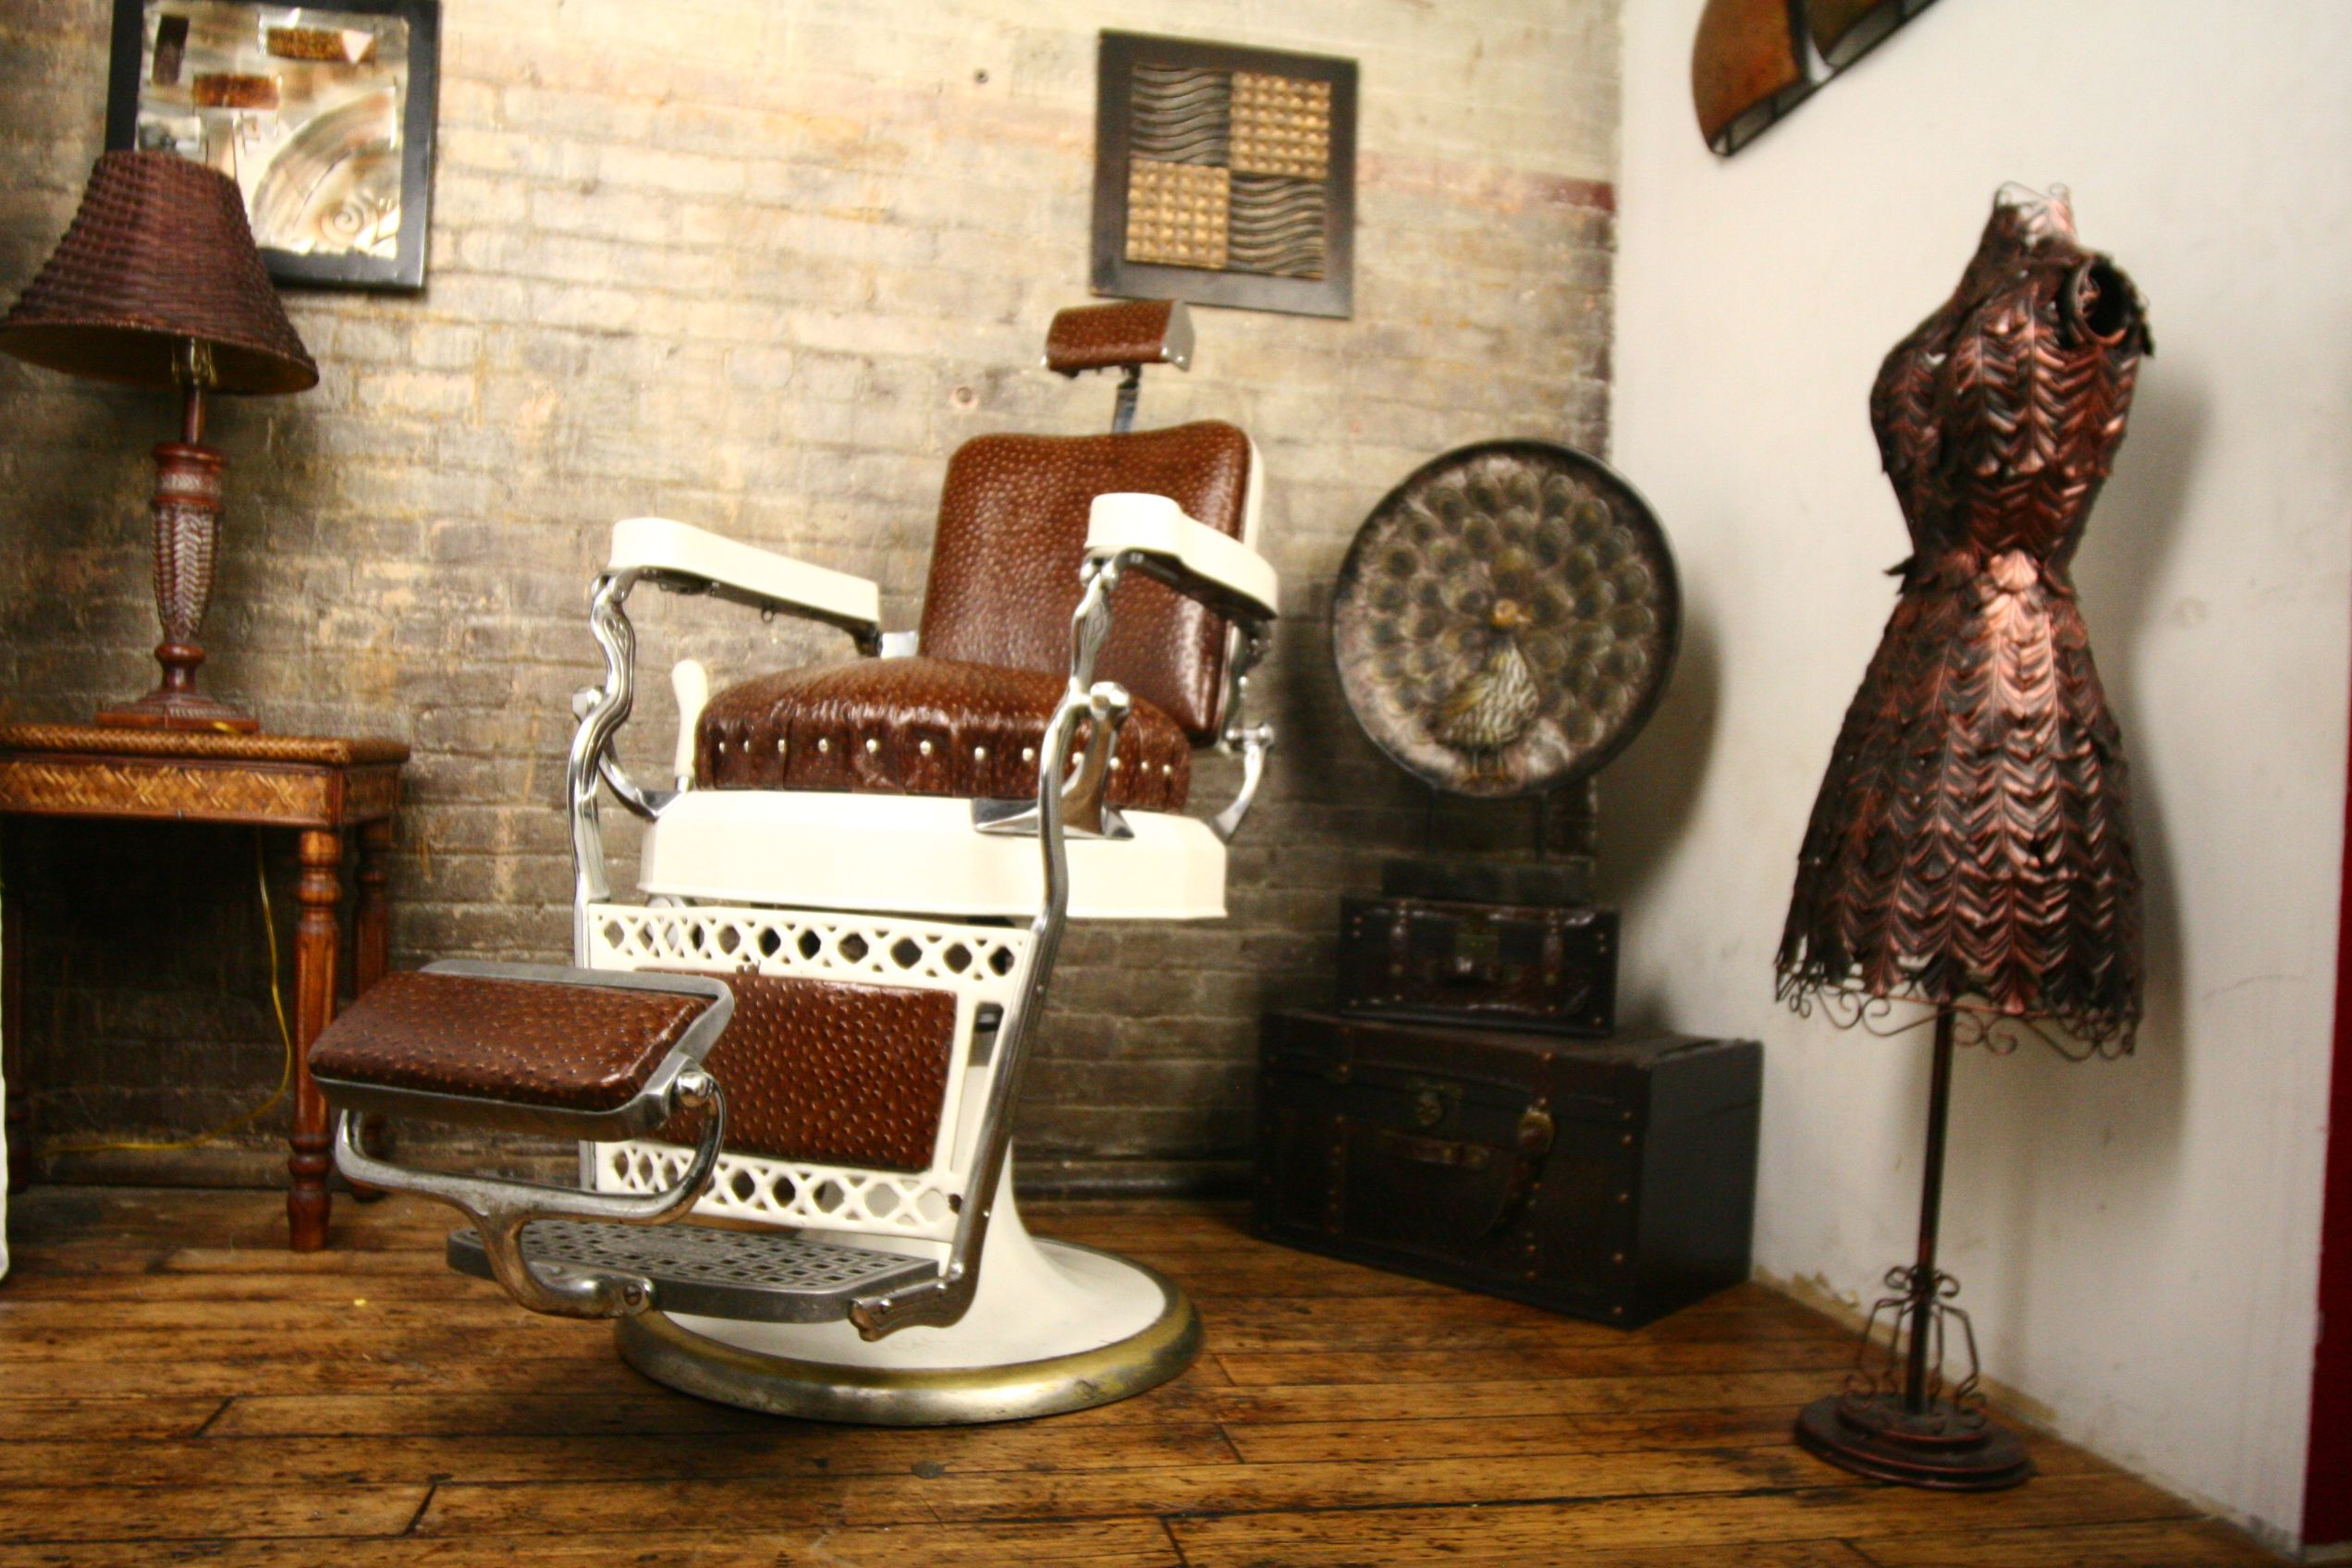 Antique Barber Chair For Sale Retro Barber Shop Barber Chair Tree Vintage Barber Chair